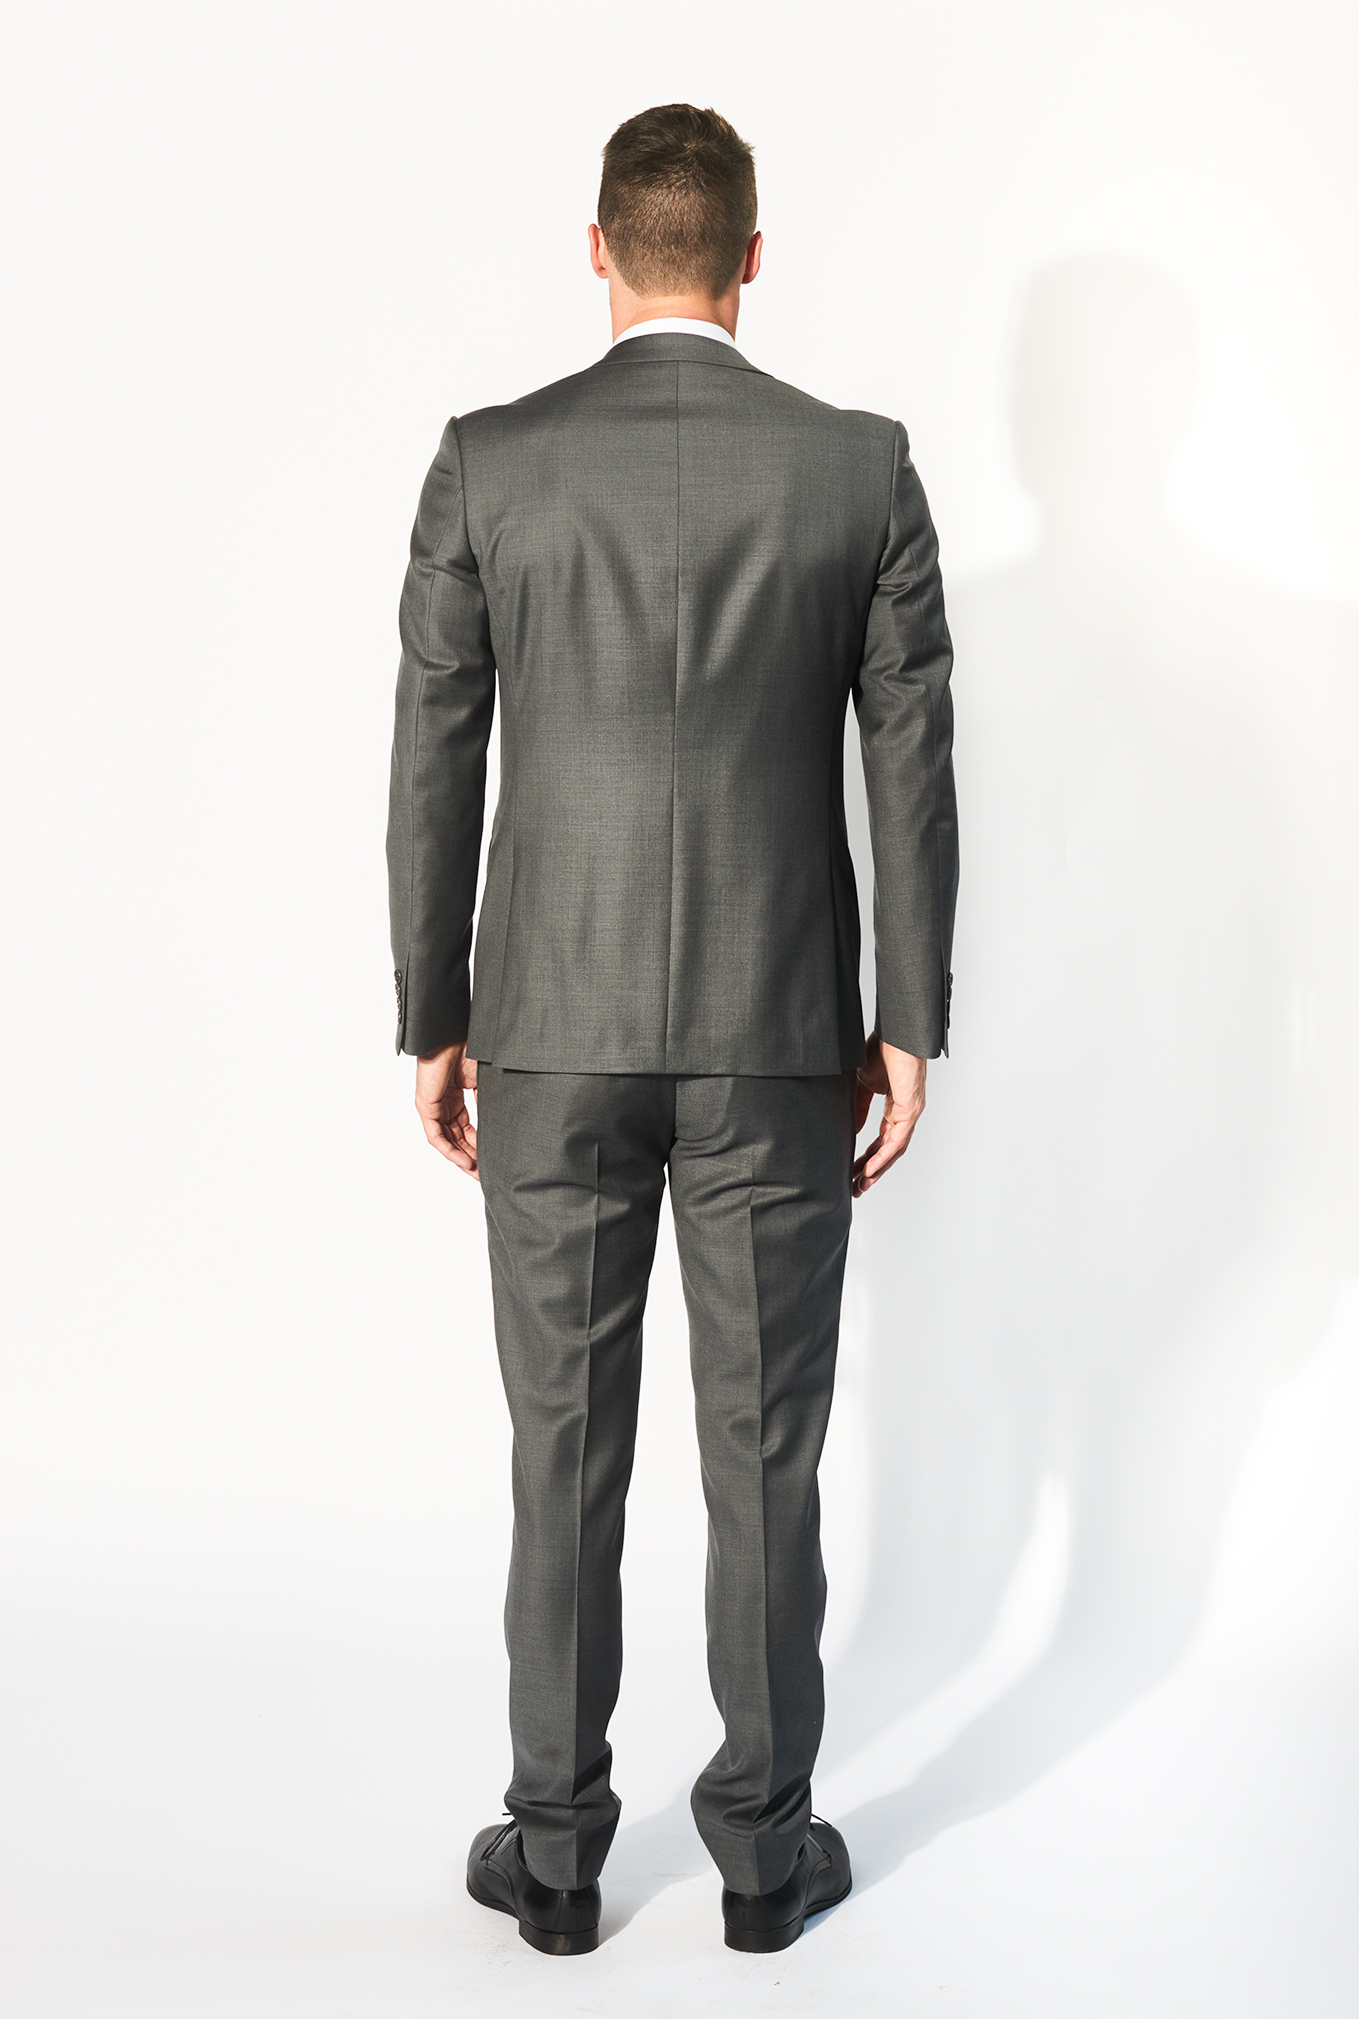 The Daniel grey suit back view